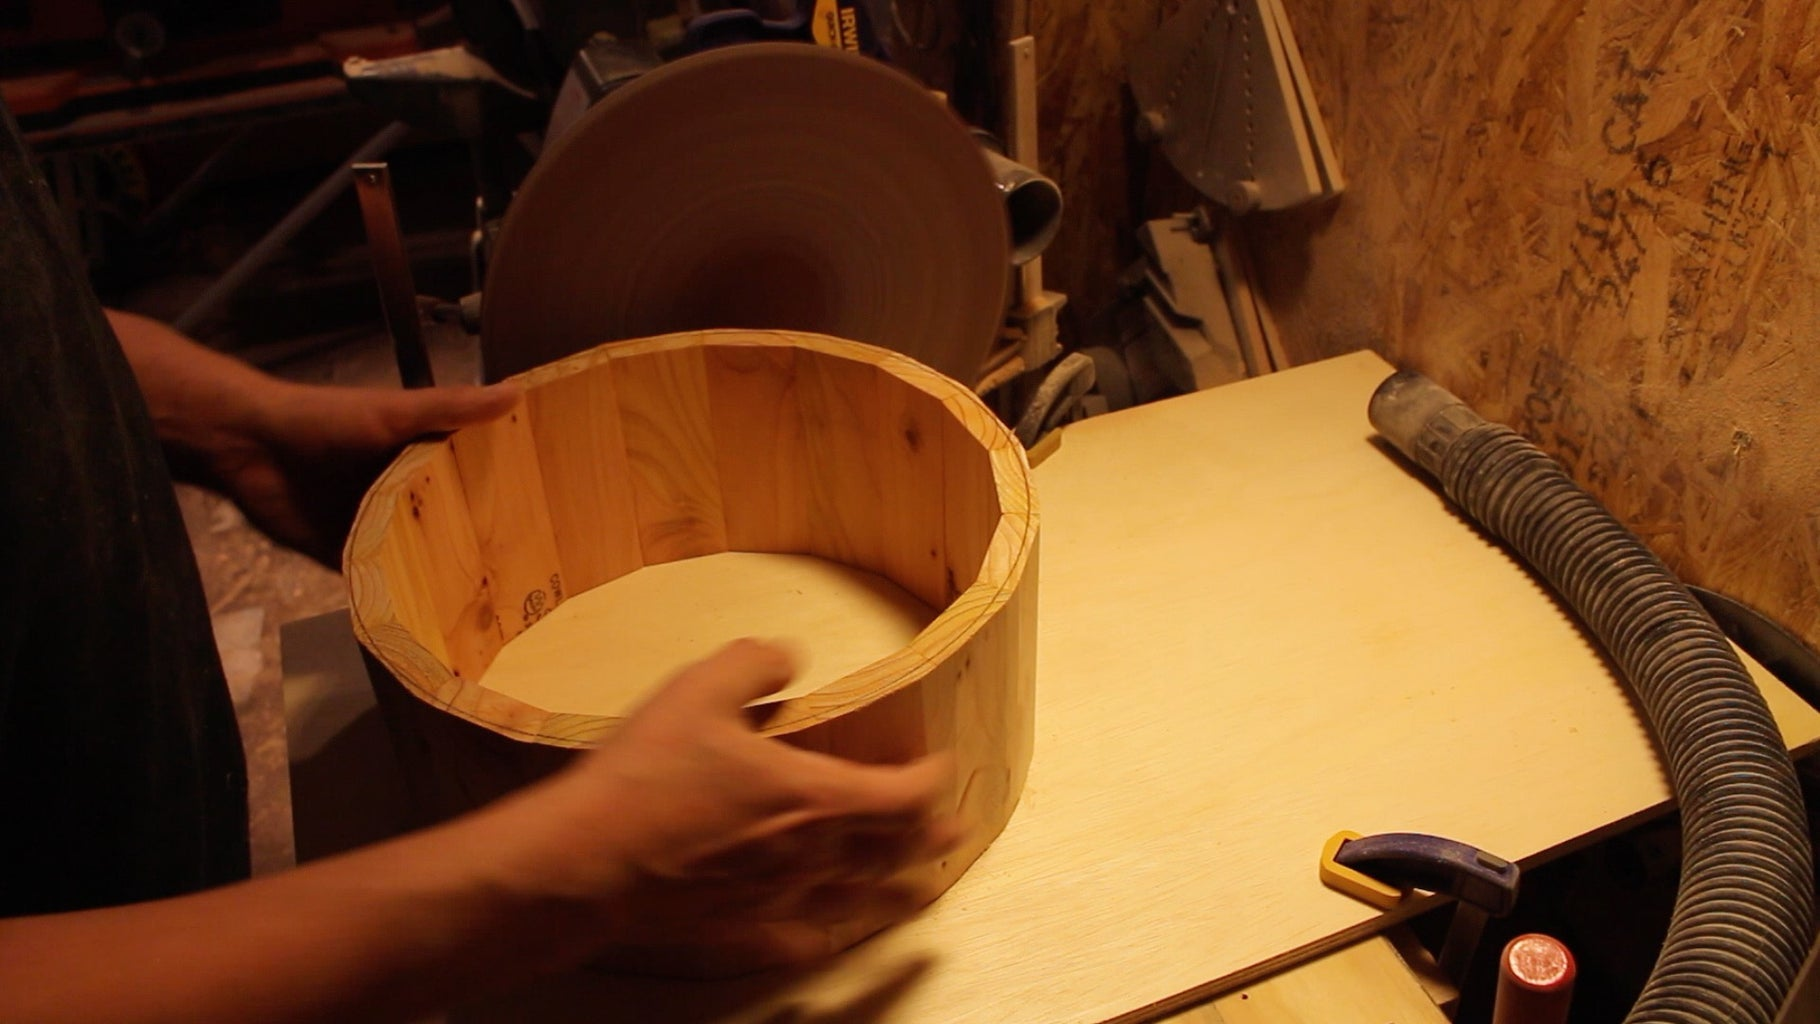 Sanding and Truing Up the Shell